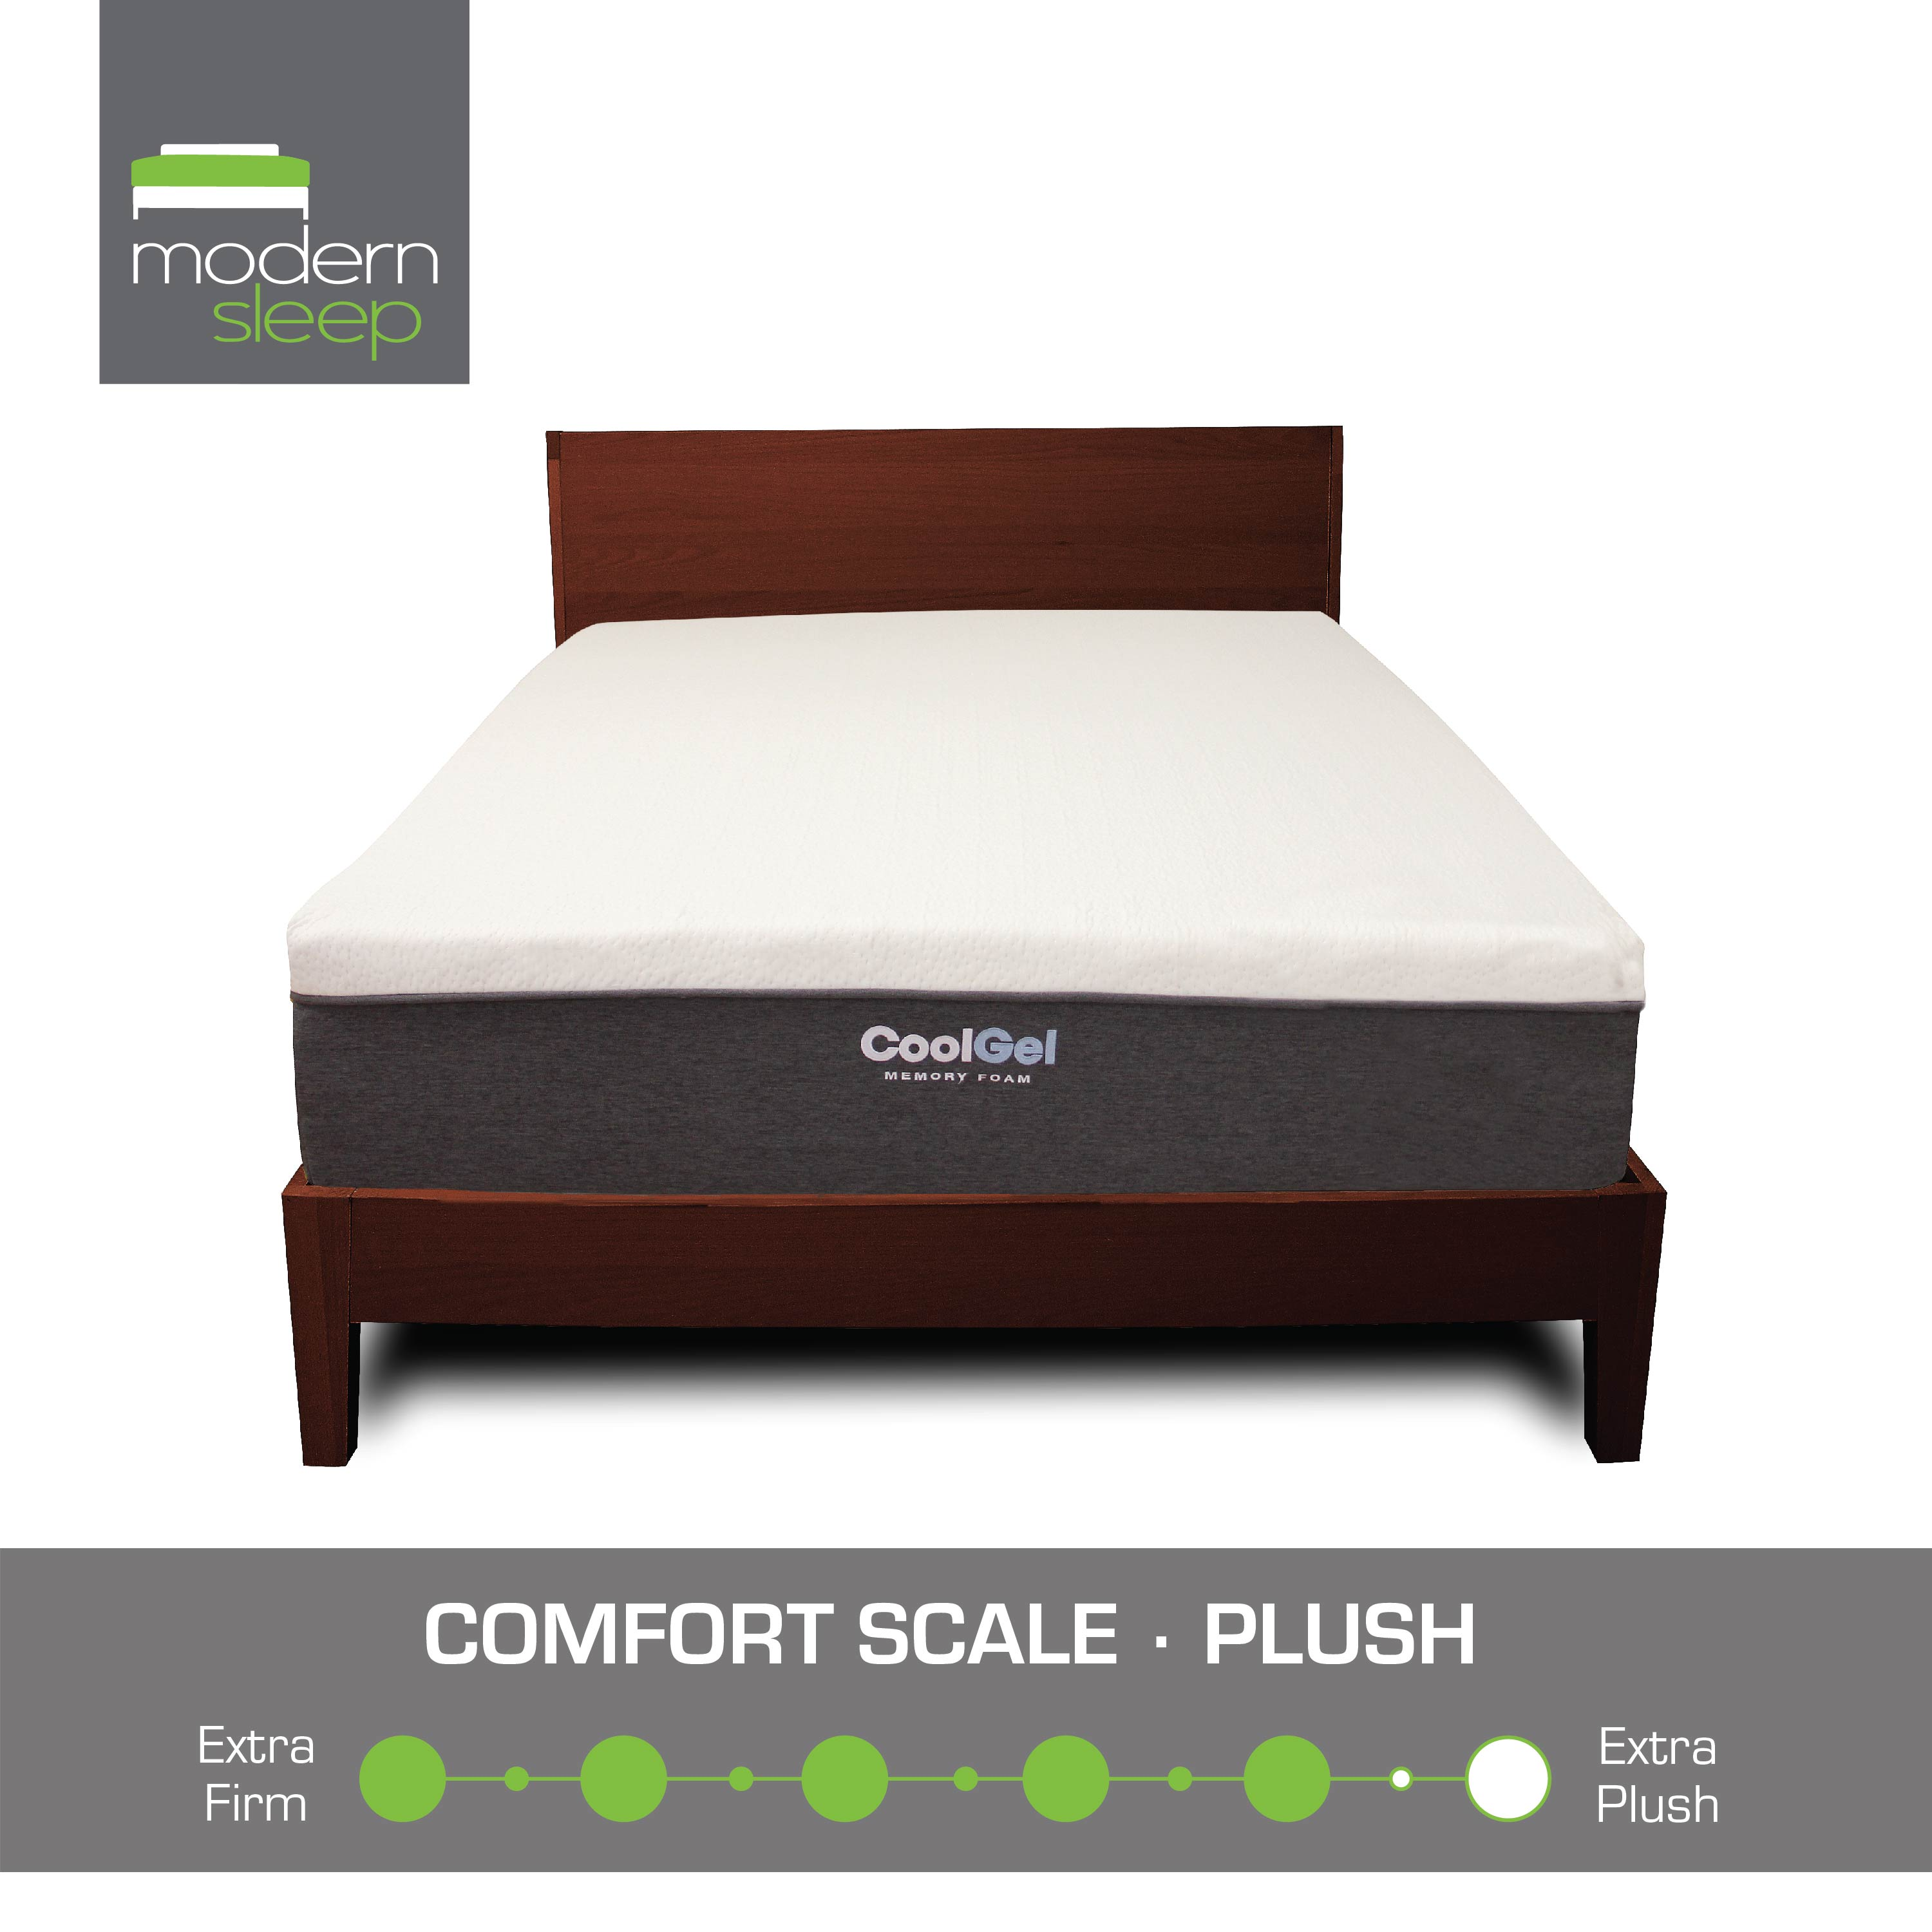 rated what best june mattress makes heavy person people a beds good top pexels photo for reviews